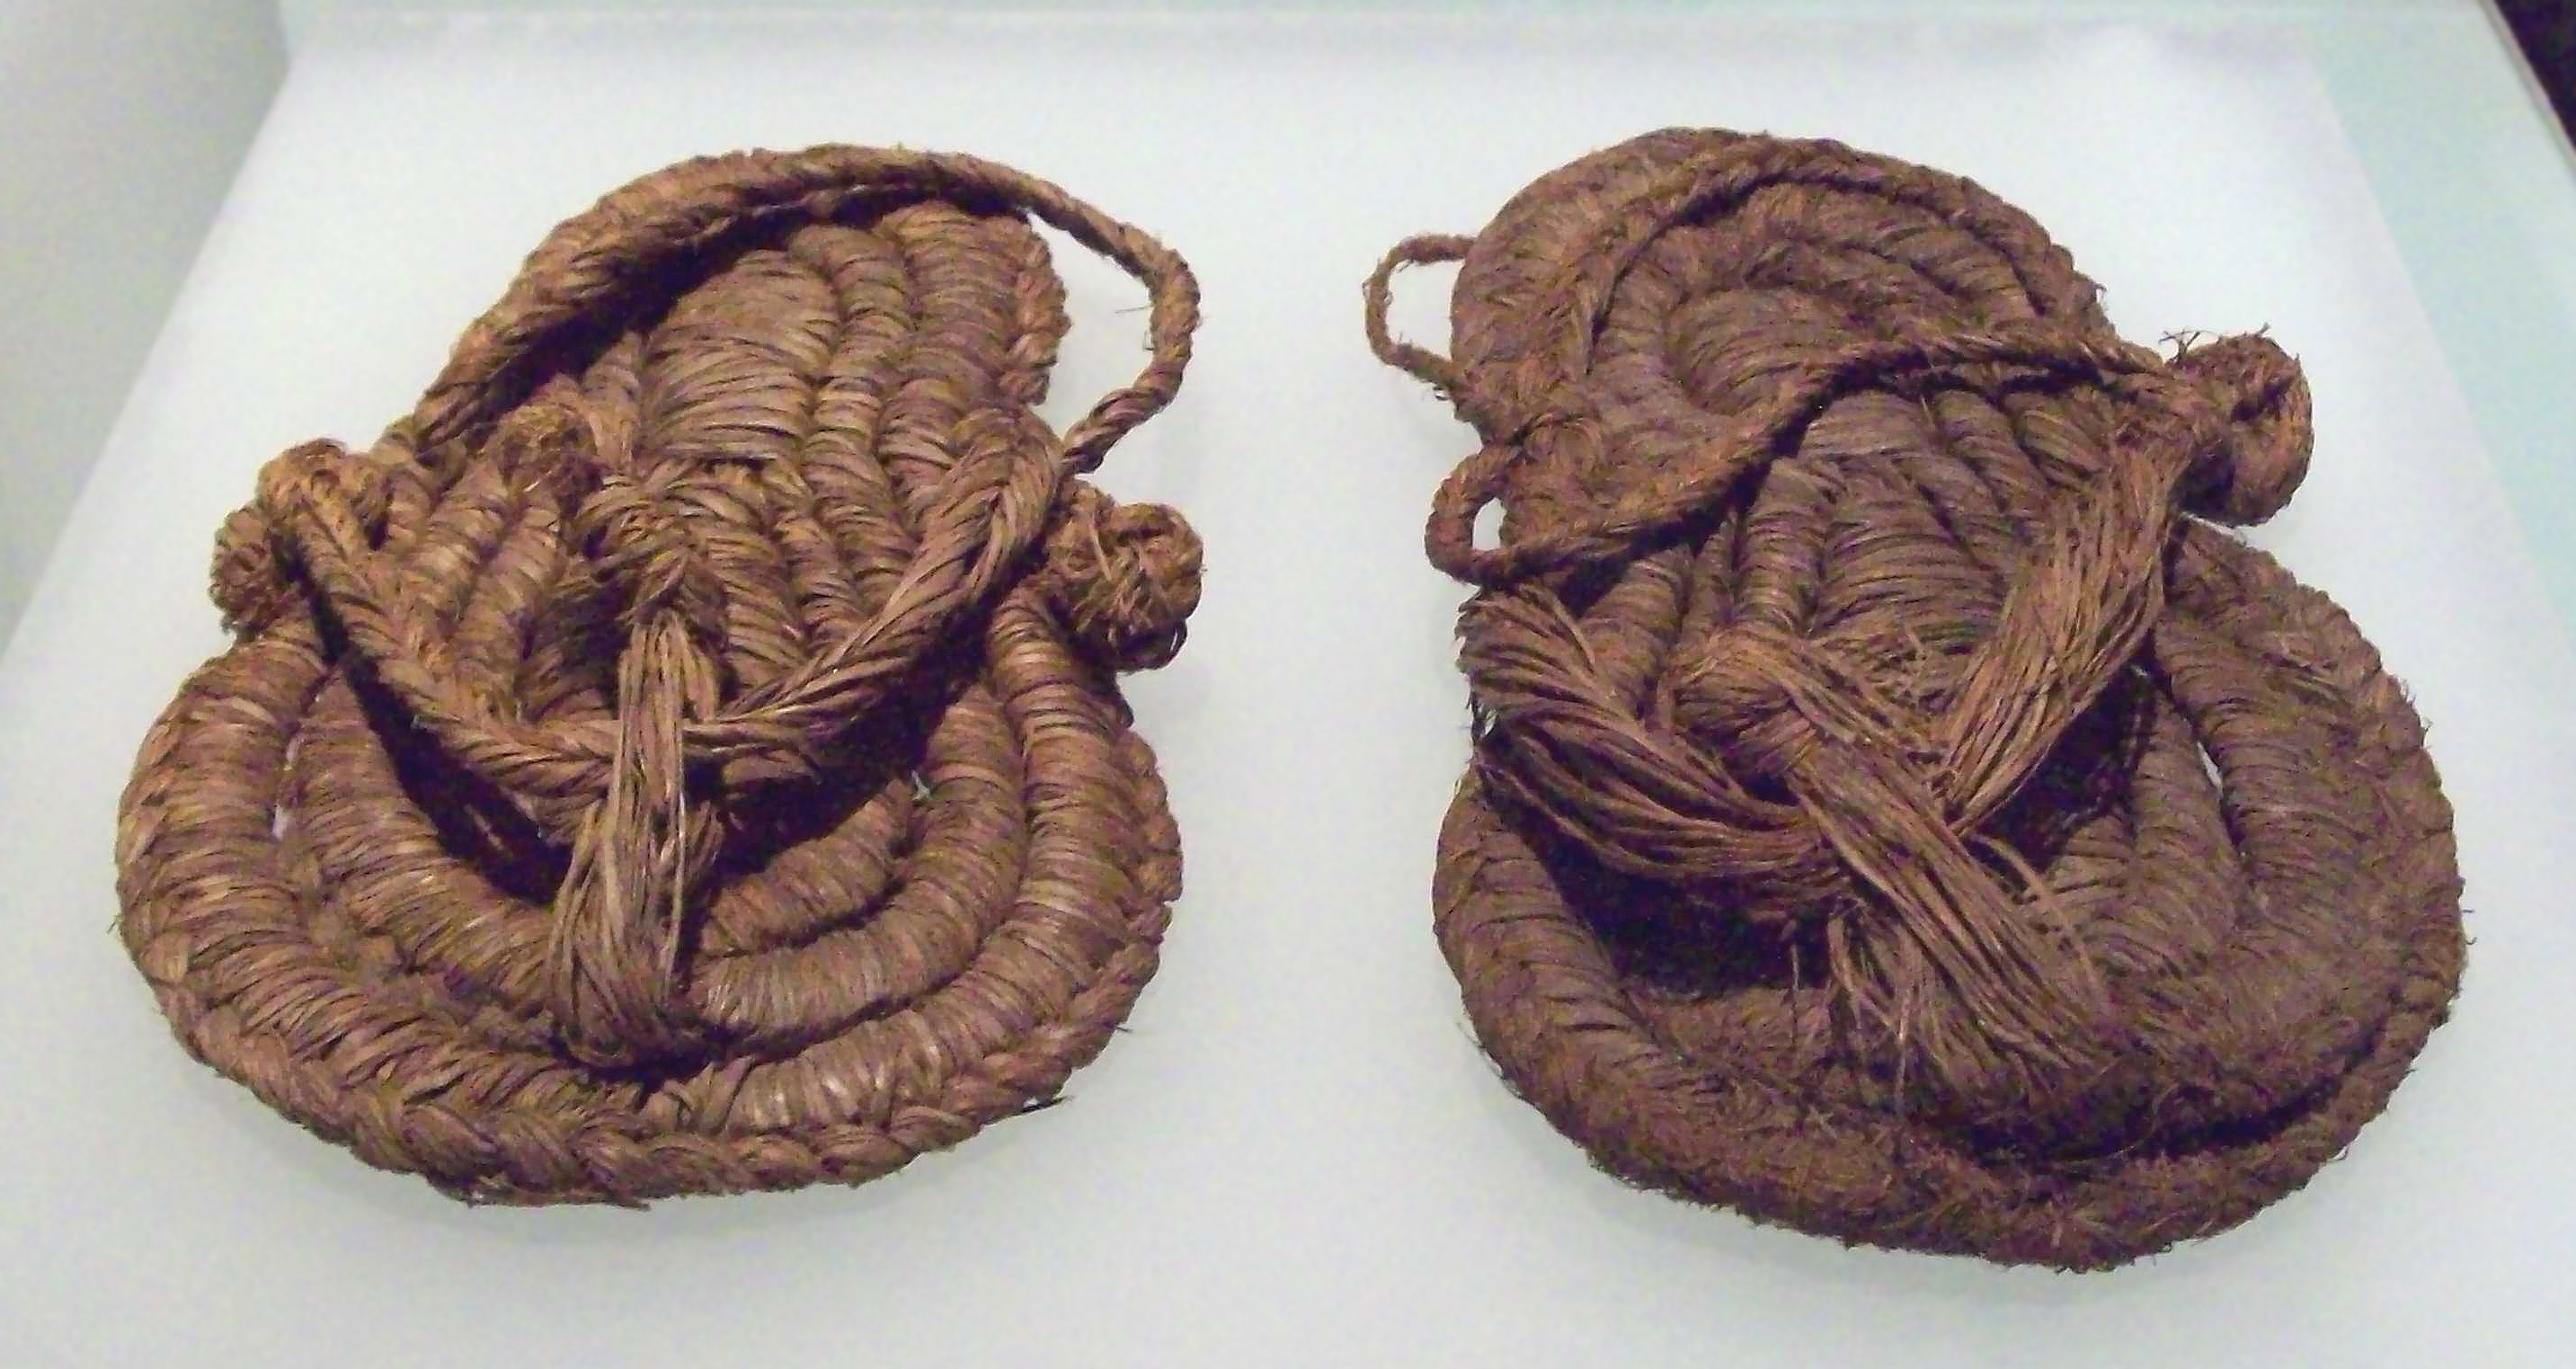 e8f824cdb00e Esparto sandals from the 6th or 5th millennium BC found in Spain. Roman  shoes  a man s